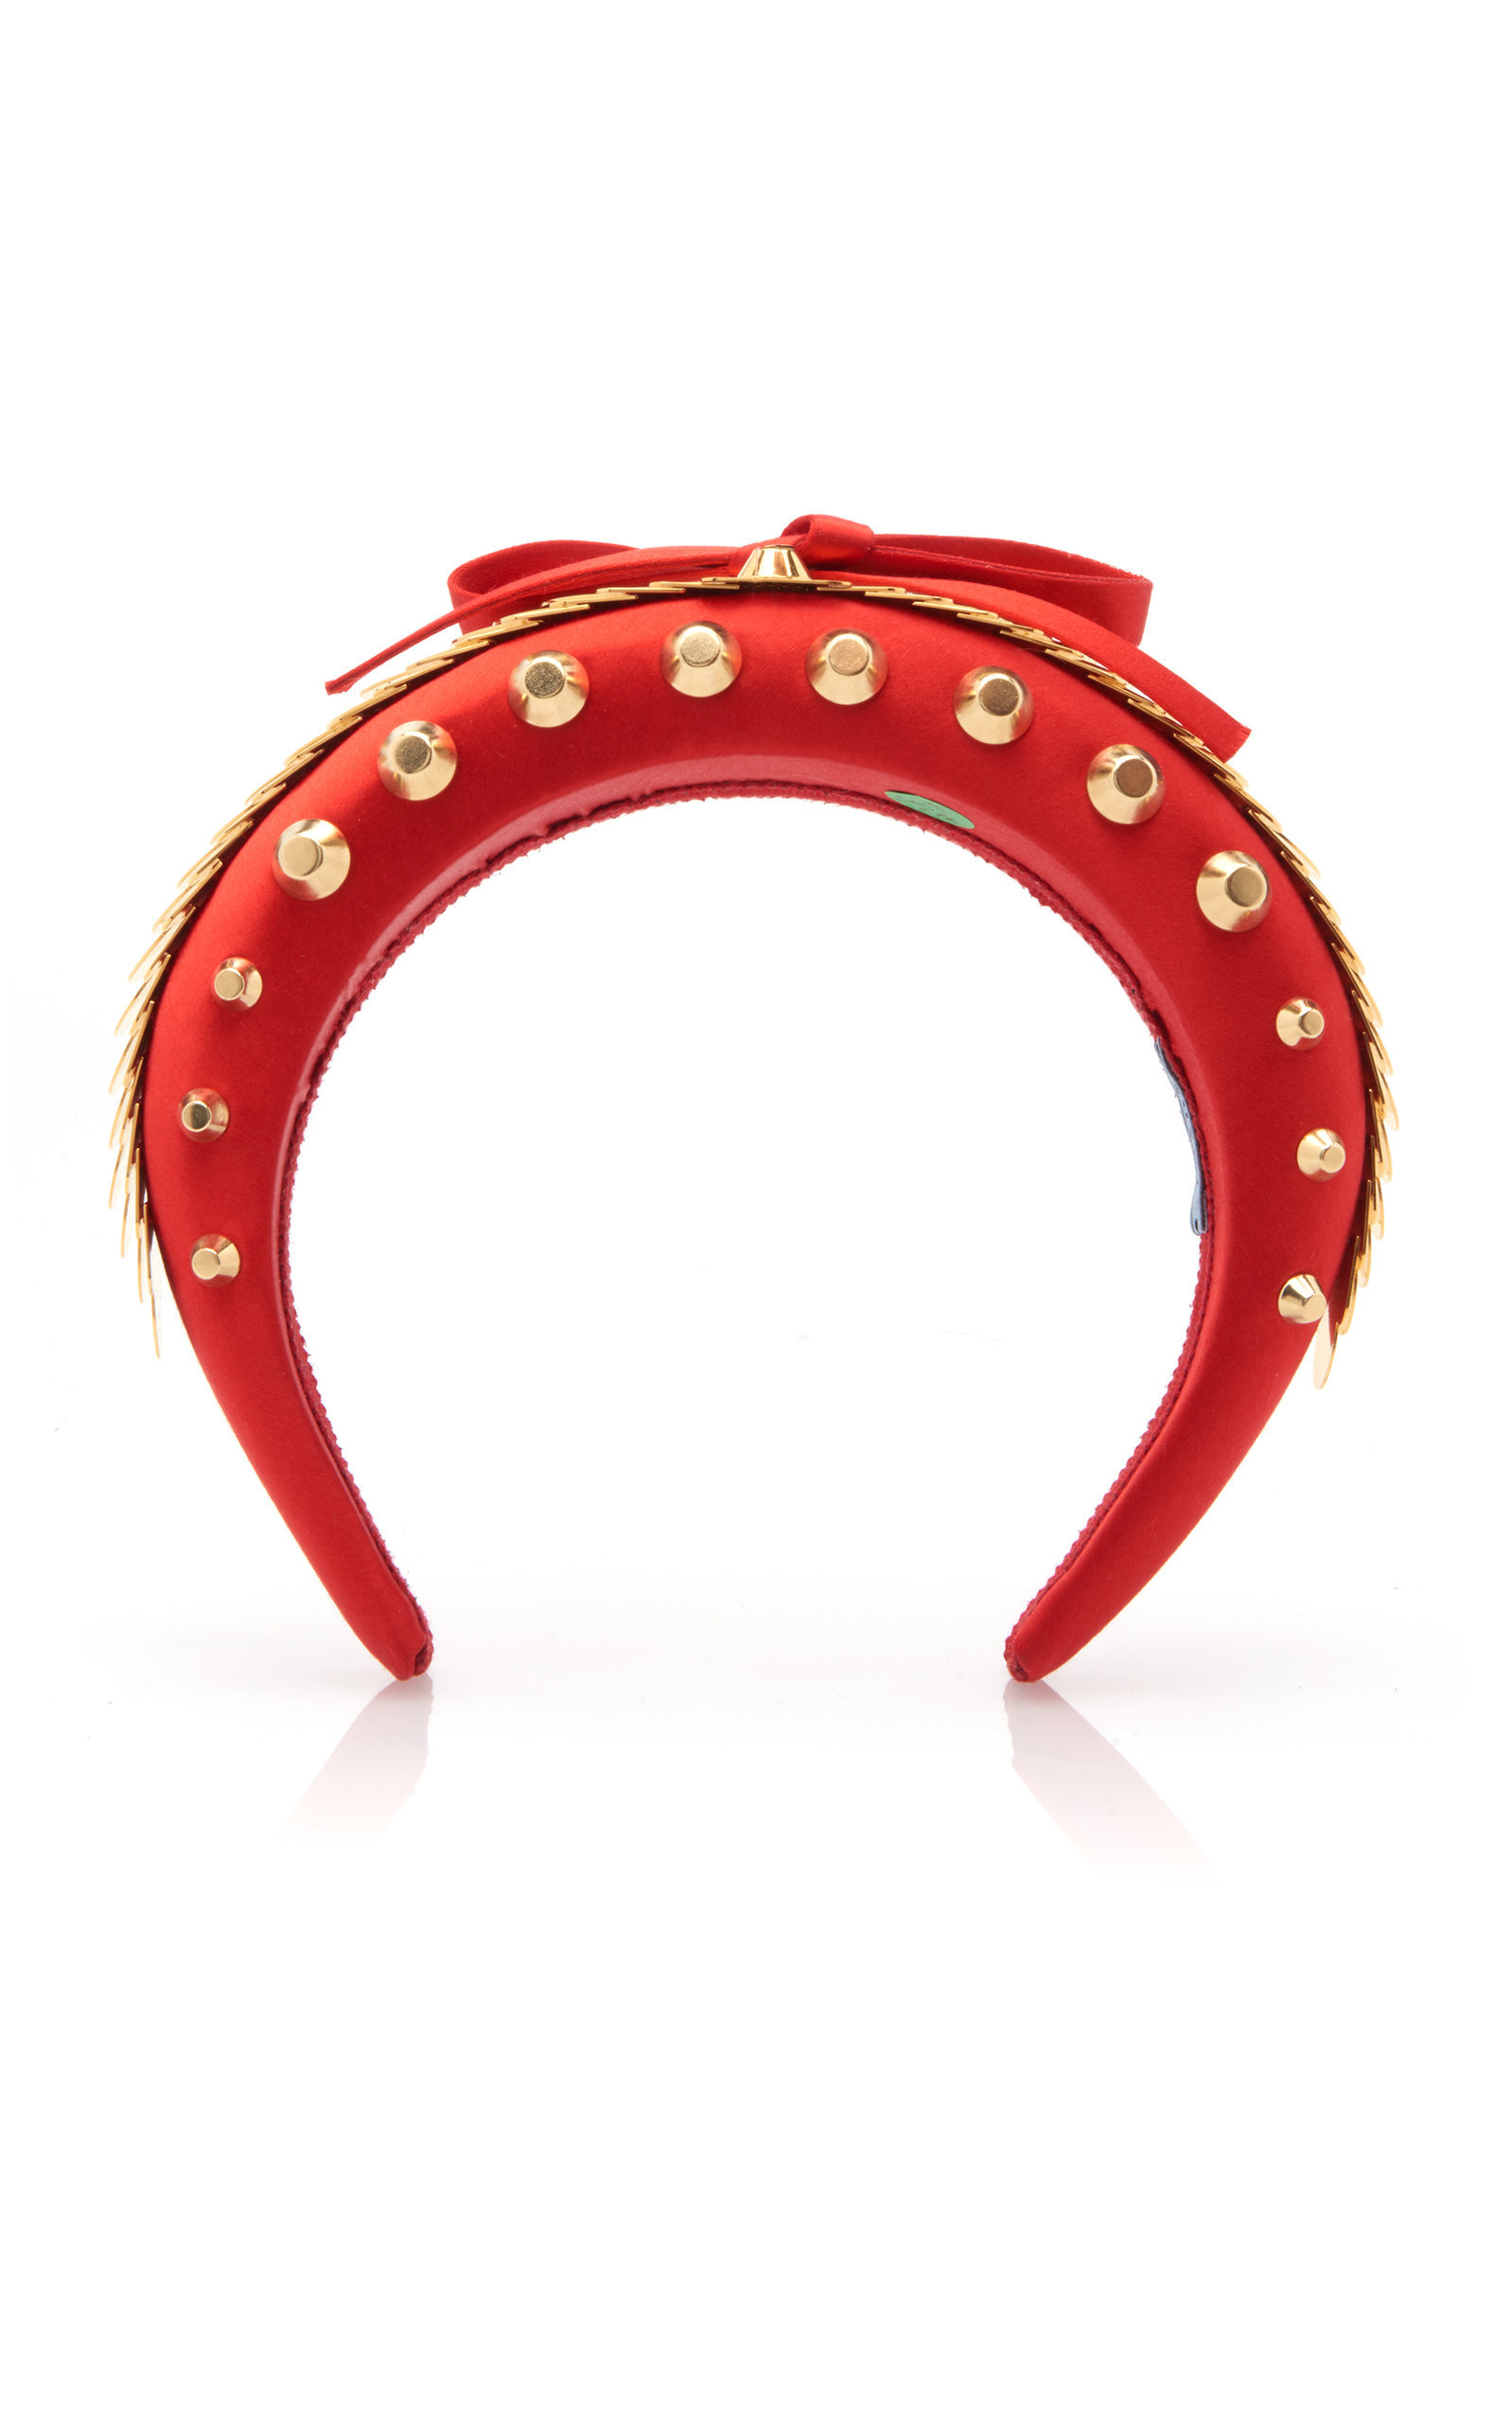 PRADA Bow-Detailed Embellished Satin Headband, AVAILABLE AT MODAOPERANDI